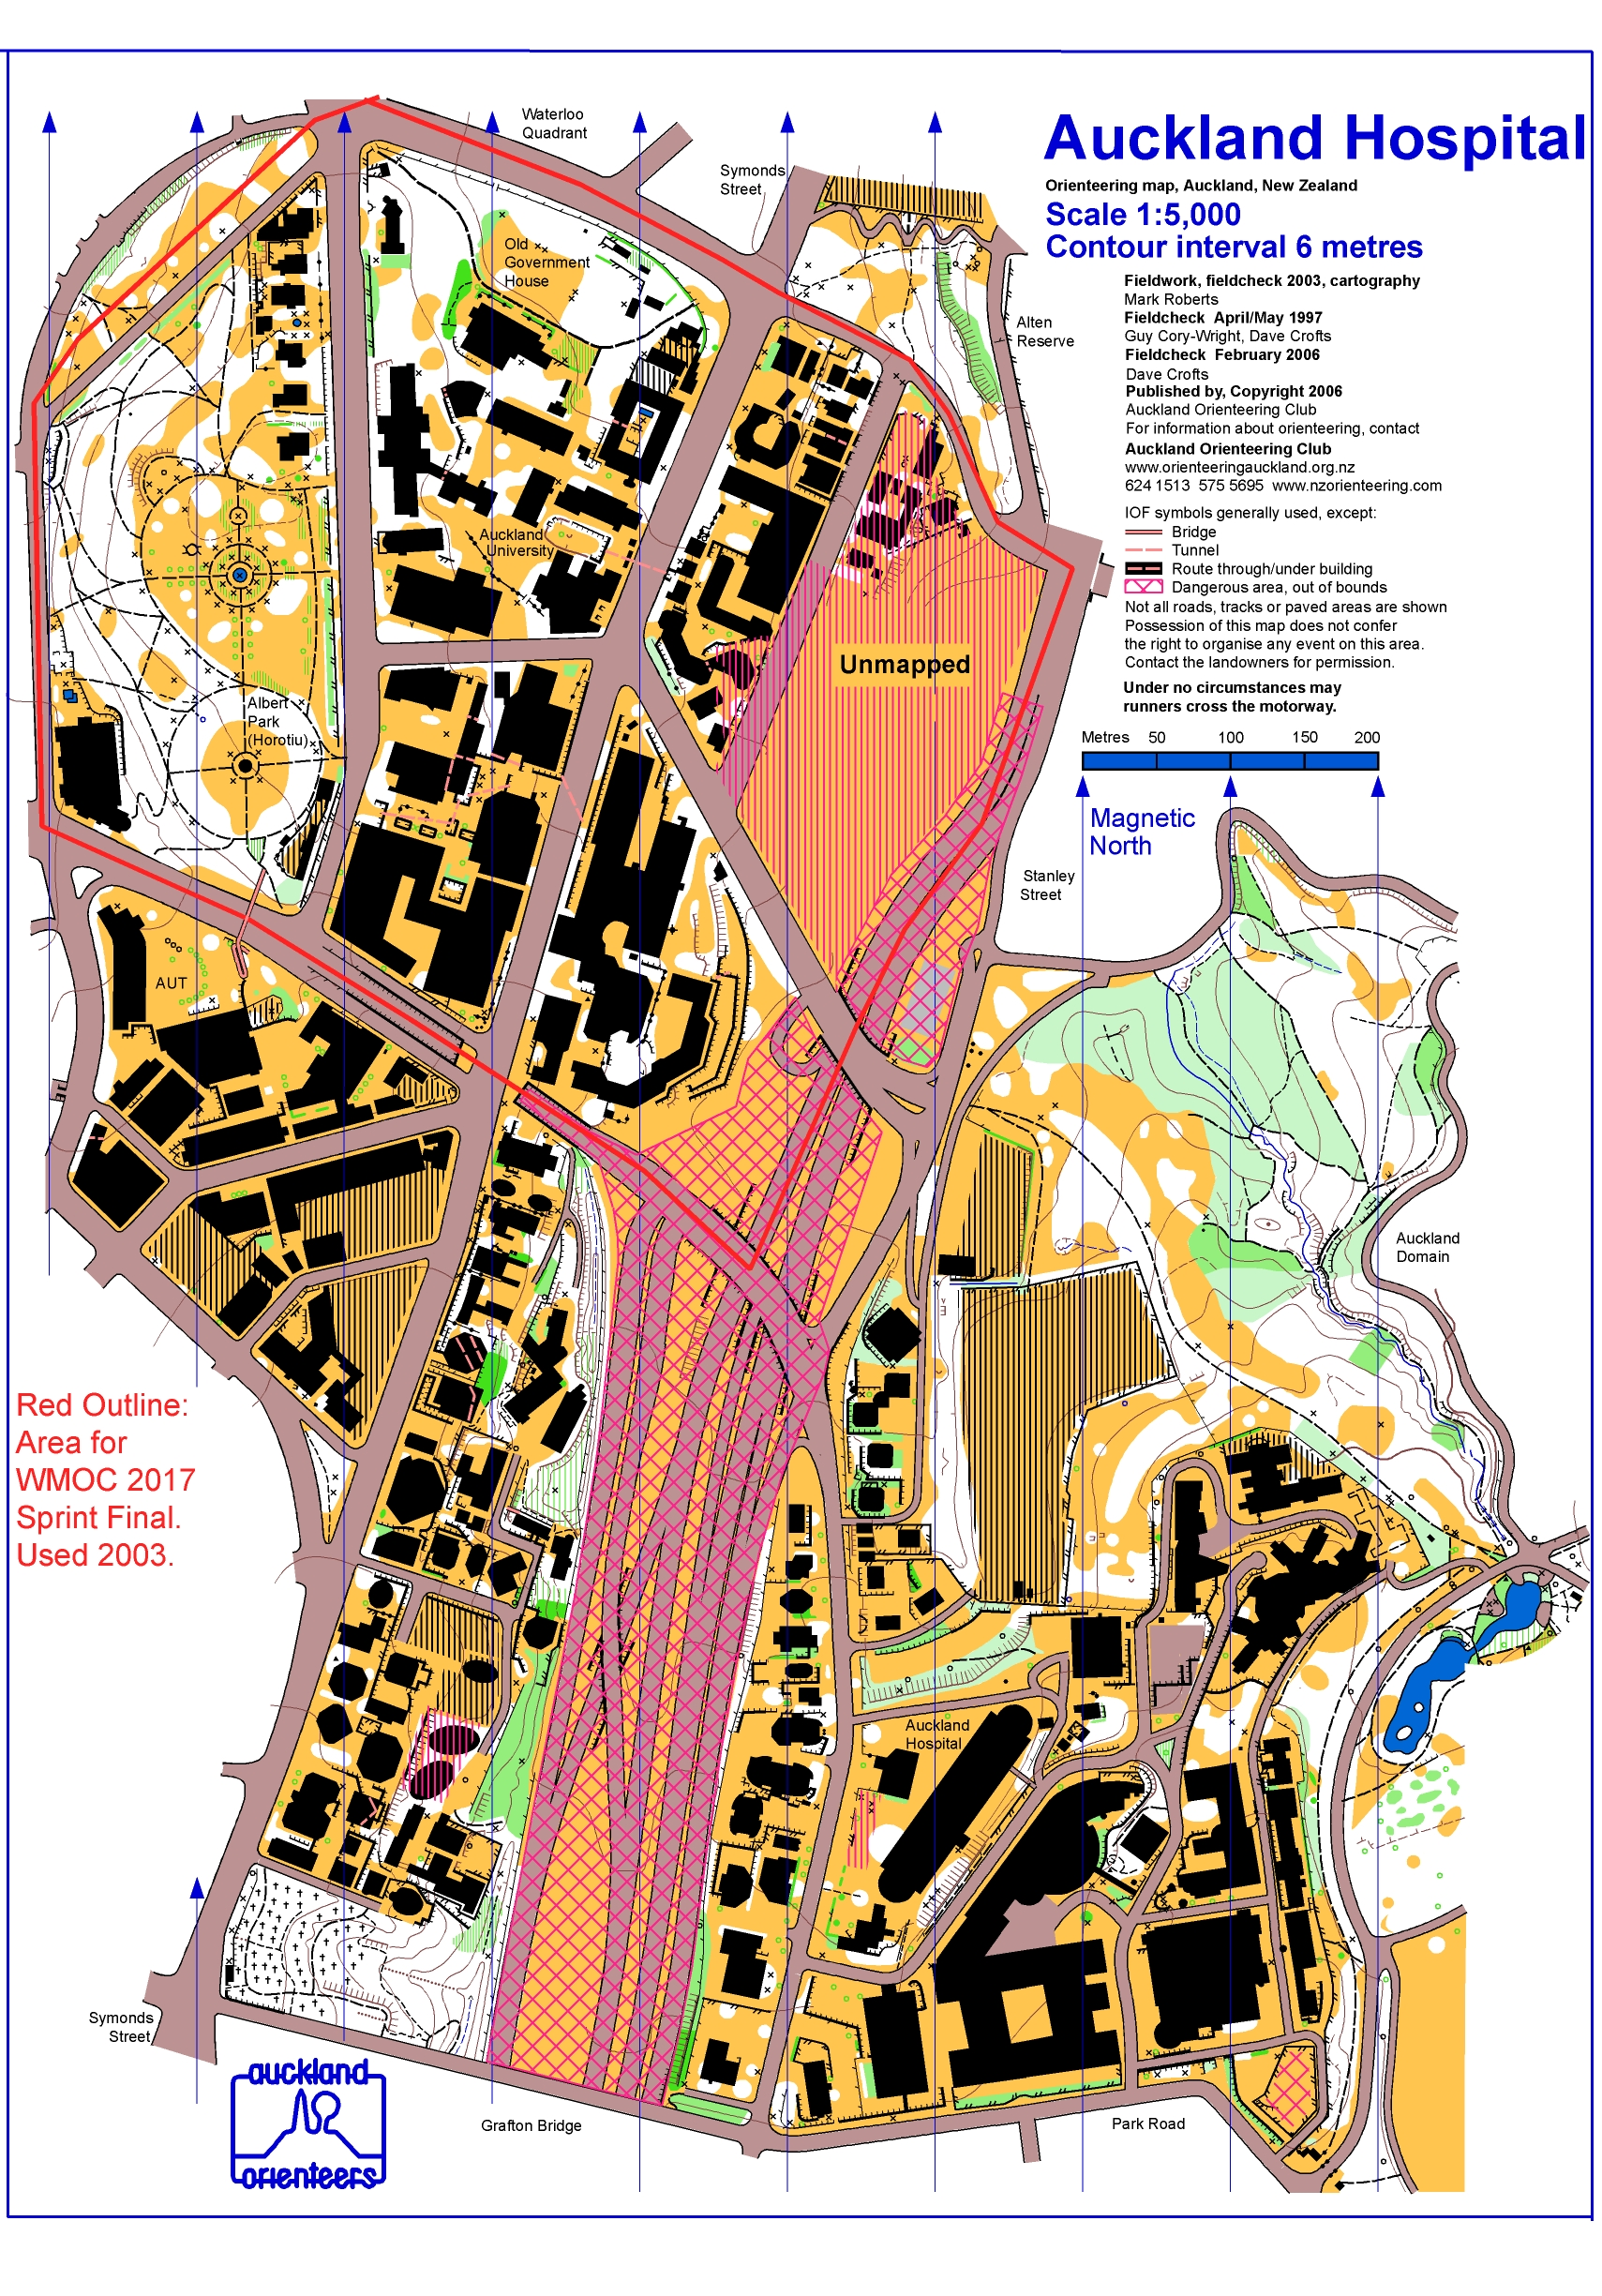 World masters games 2017 world masters orienteering wmoc2017 old maps sprintfinal the university of auckland biocorpaavc